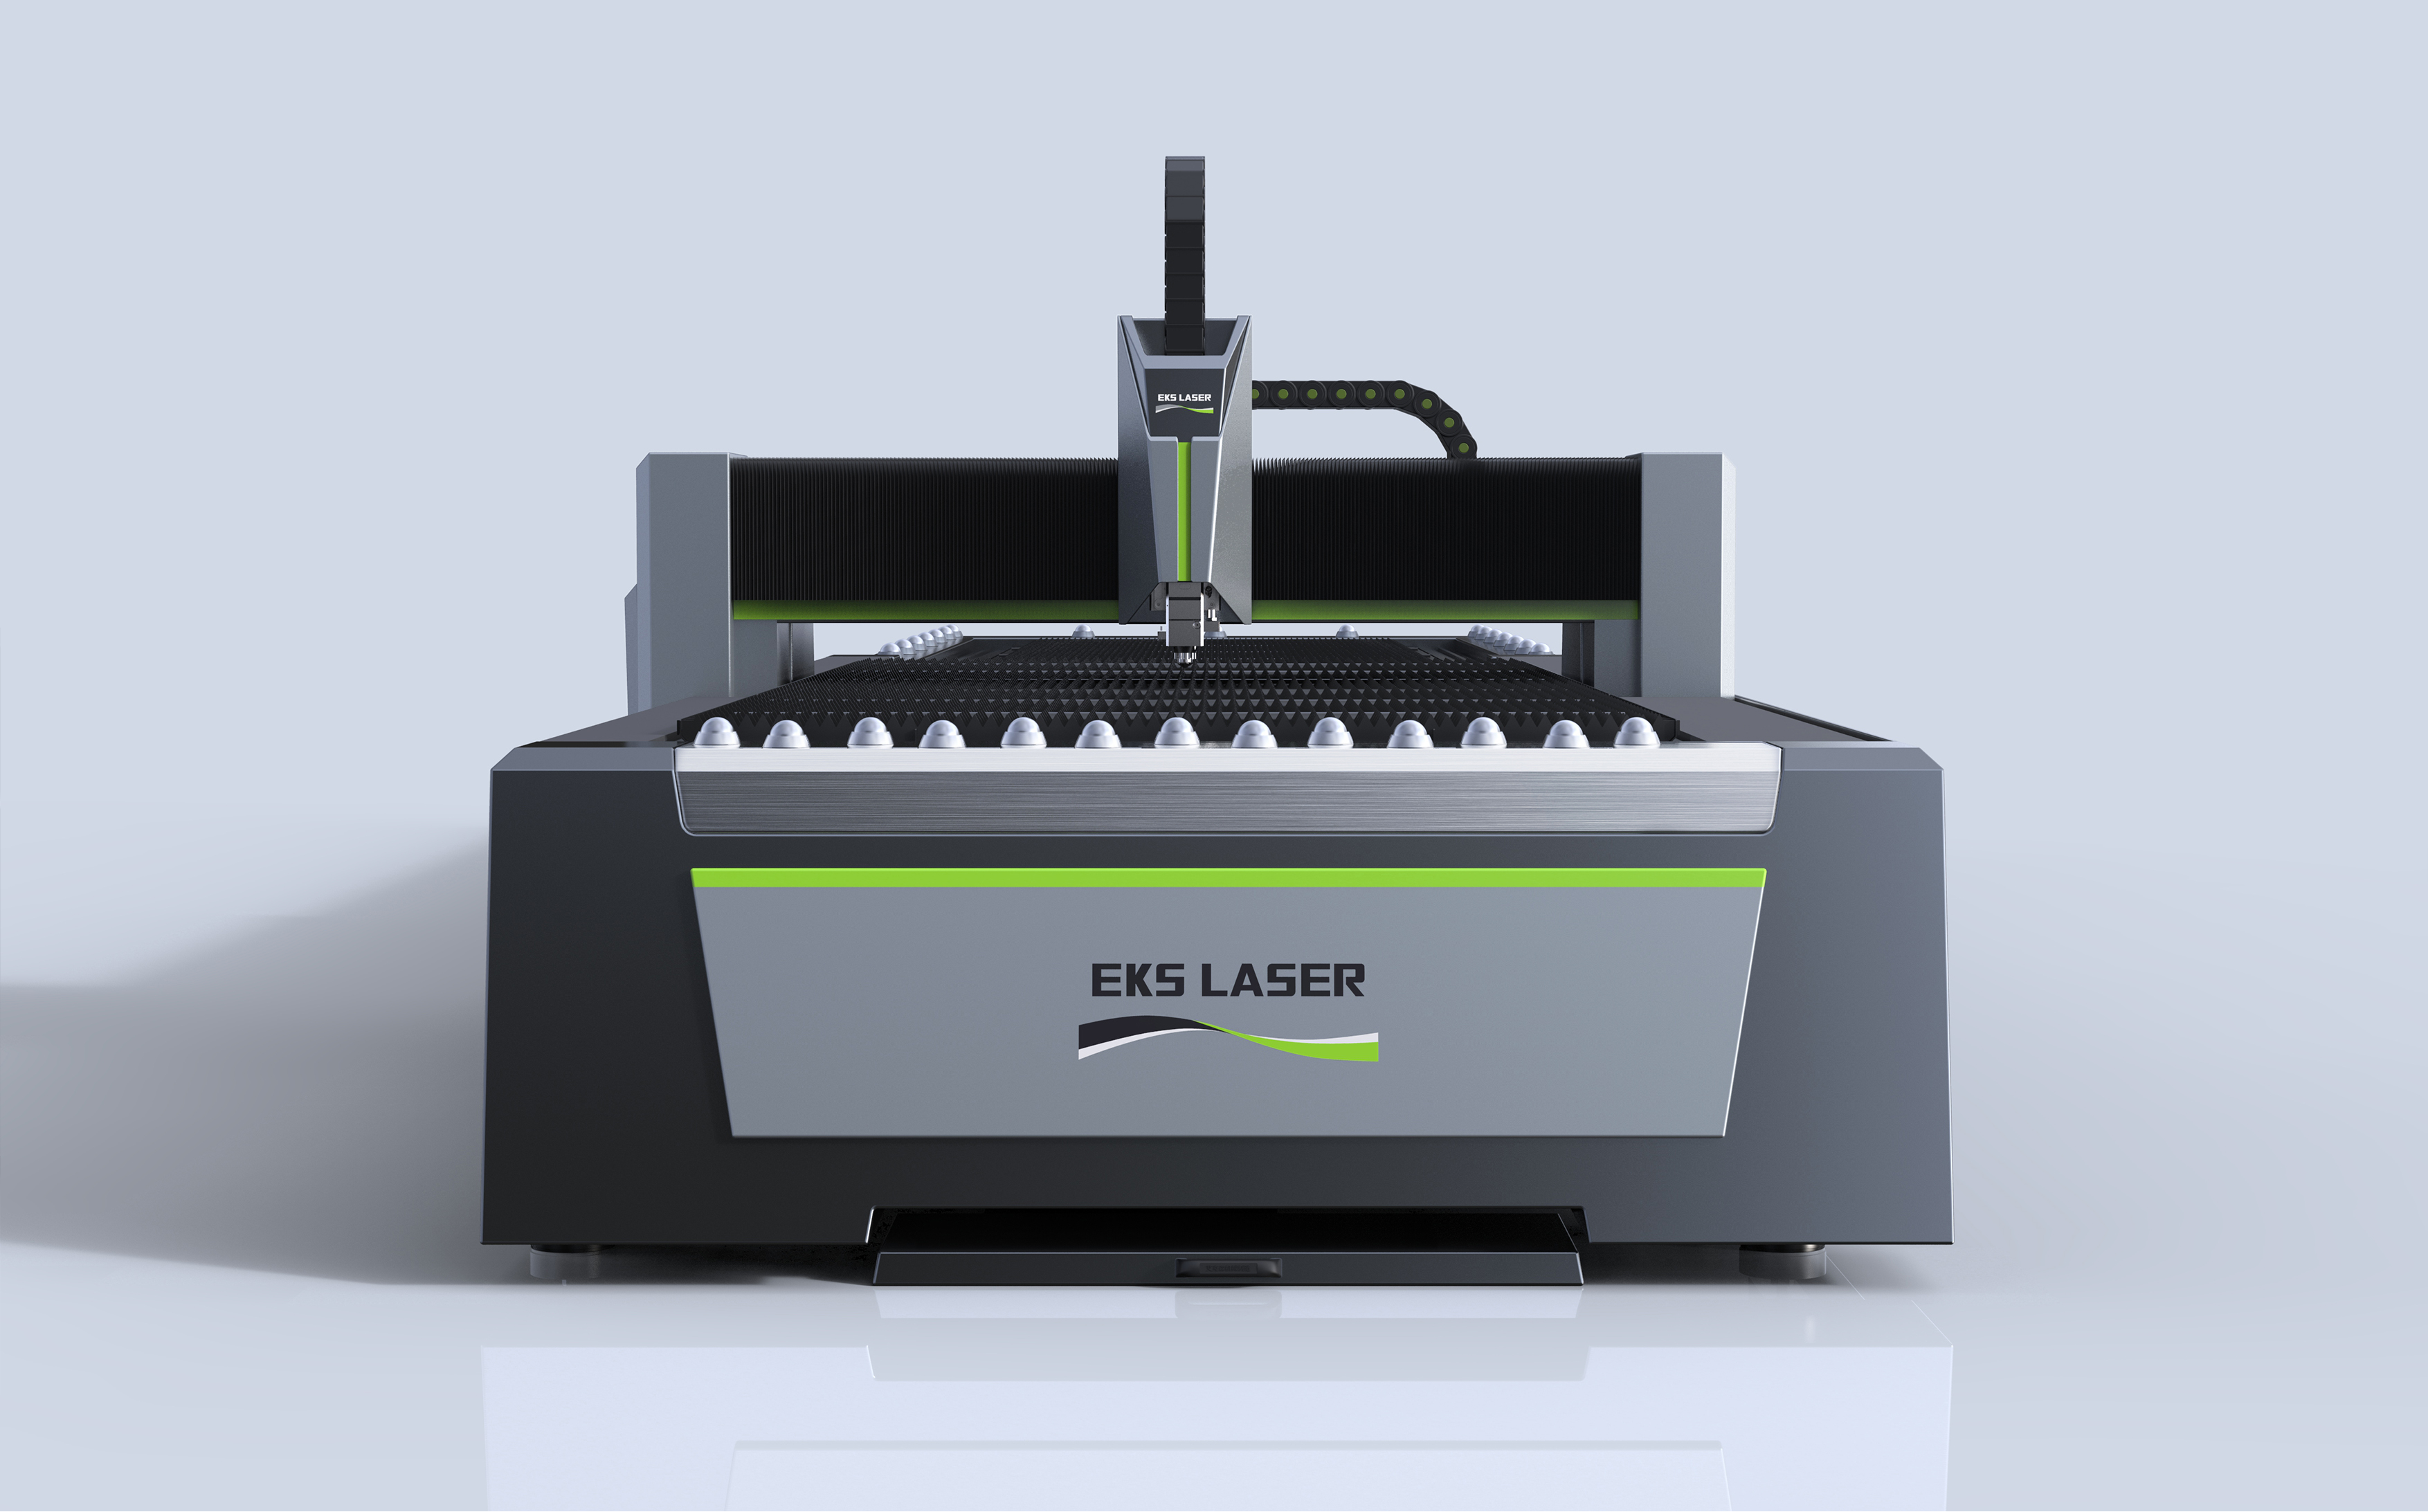 Medium-power dual-table fiber laser cutting machine for lighting hardware